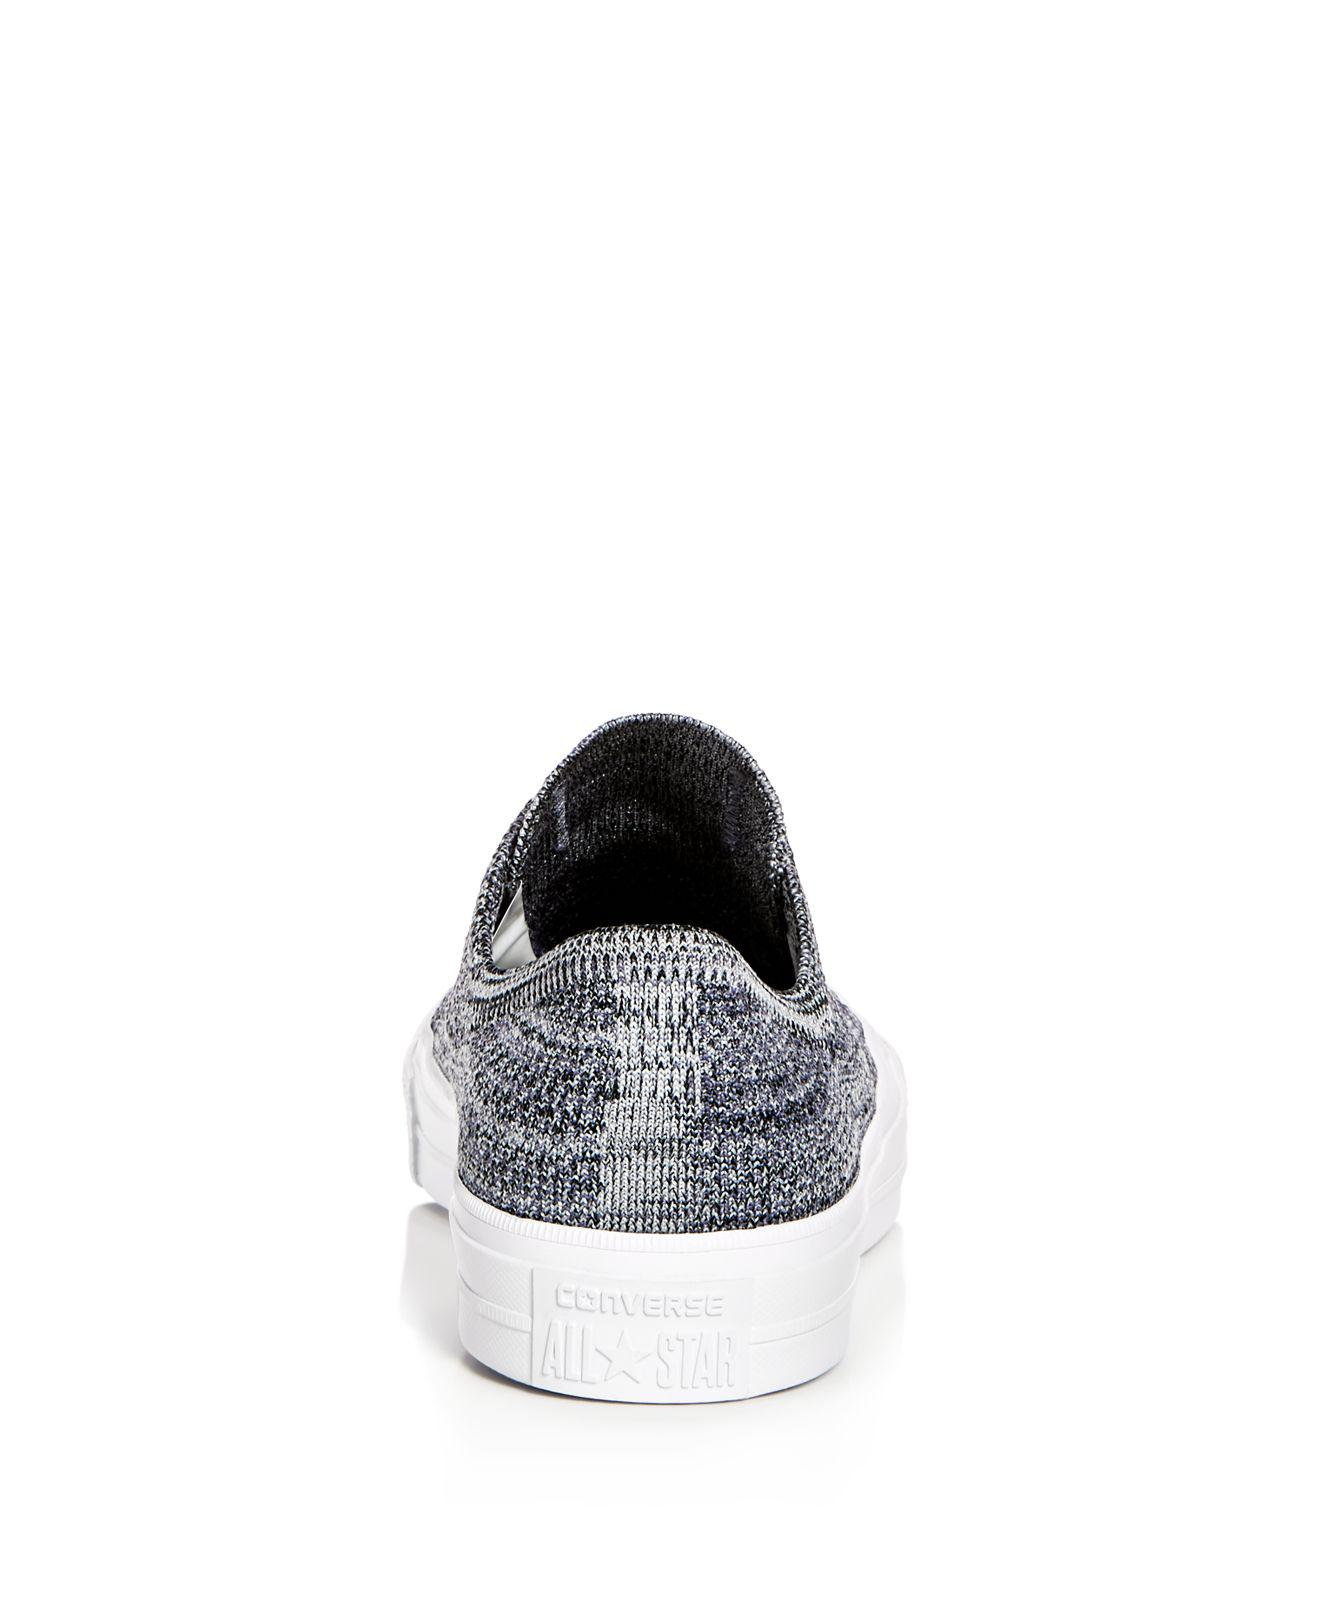 05989d1f08e4 Converse - Black X Nike Men s Chuck Taylor All Star Flyknit Lace Up Sneakers  for Men